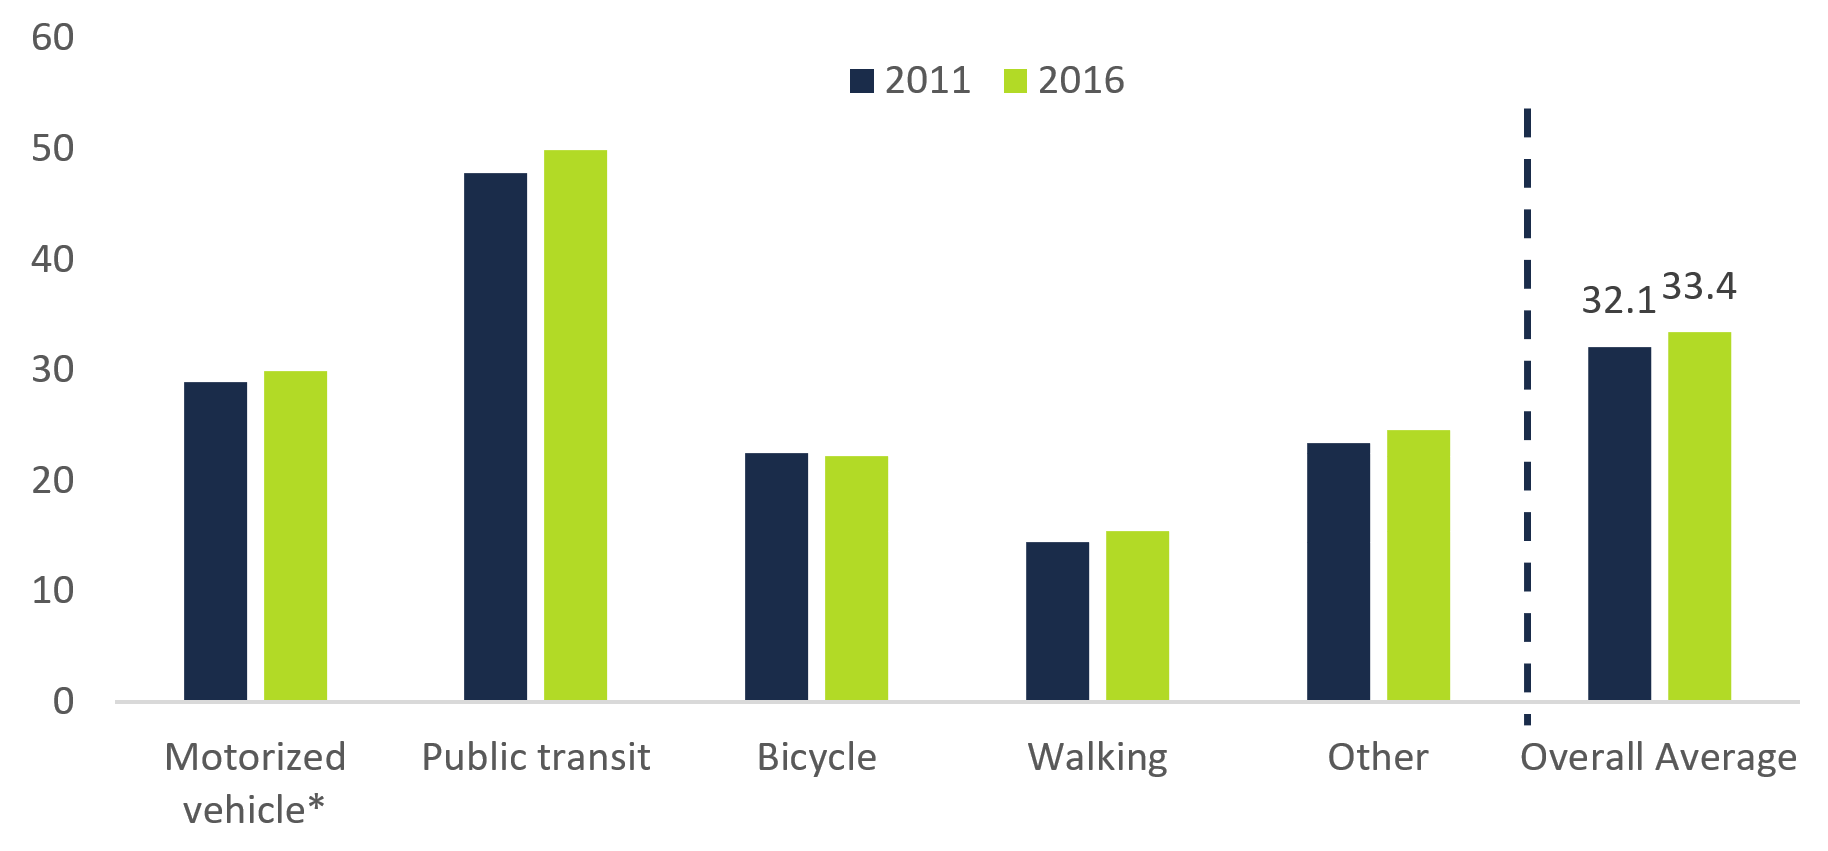 This chart shows the average commute times to work by mode of transportation in the GTHA cites in 2011 and 2016 in minutes. The chart shows that, in 2011, the average commute time to work via motorized vehicle was 28.9 minutes, 47.8 minutes for public transit, 22.5 minutes for bicycles, 14.5 for walking and 23.4 minutes for other modes of transportation. The chart shows that, in 2016, the average commute time to work via motorized vehicle was 29.9 minutes, 49.9 minutes for public transit, 22.2 minutes for bicycles, 15.4 minutes for walking and 24.5 minutes for other modes of transportation. The chart highlights that the average commute time to work across all modes of transportation in the GTHA cites was 32.1 minutes in 2011 and 33.4 minutes in 2016.